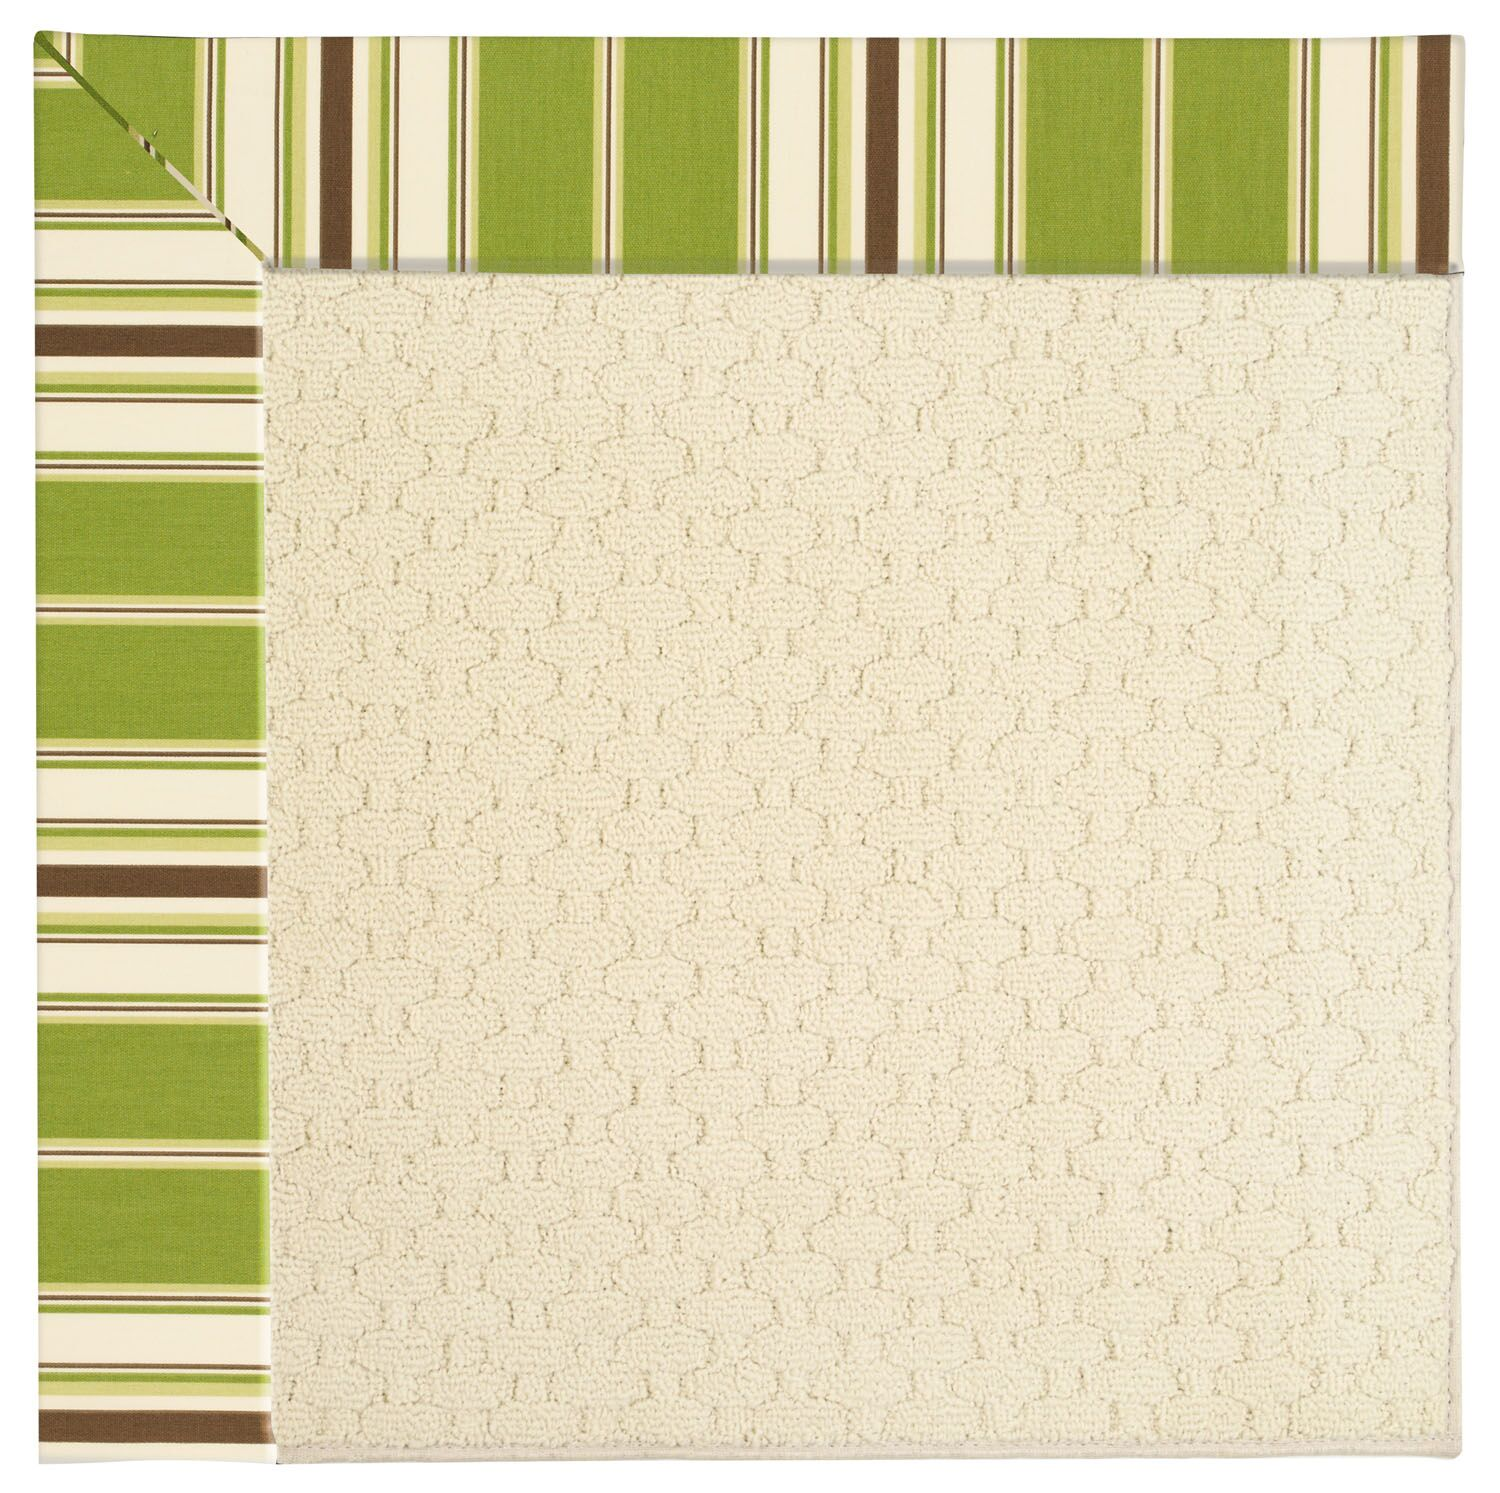 Lisle Off White Indoor/Outdoor Area Rug Rug Size: Rectangle 10' x 14'